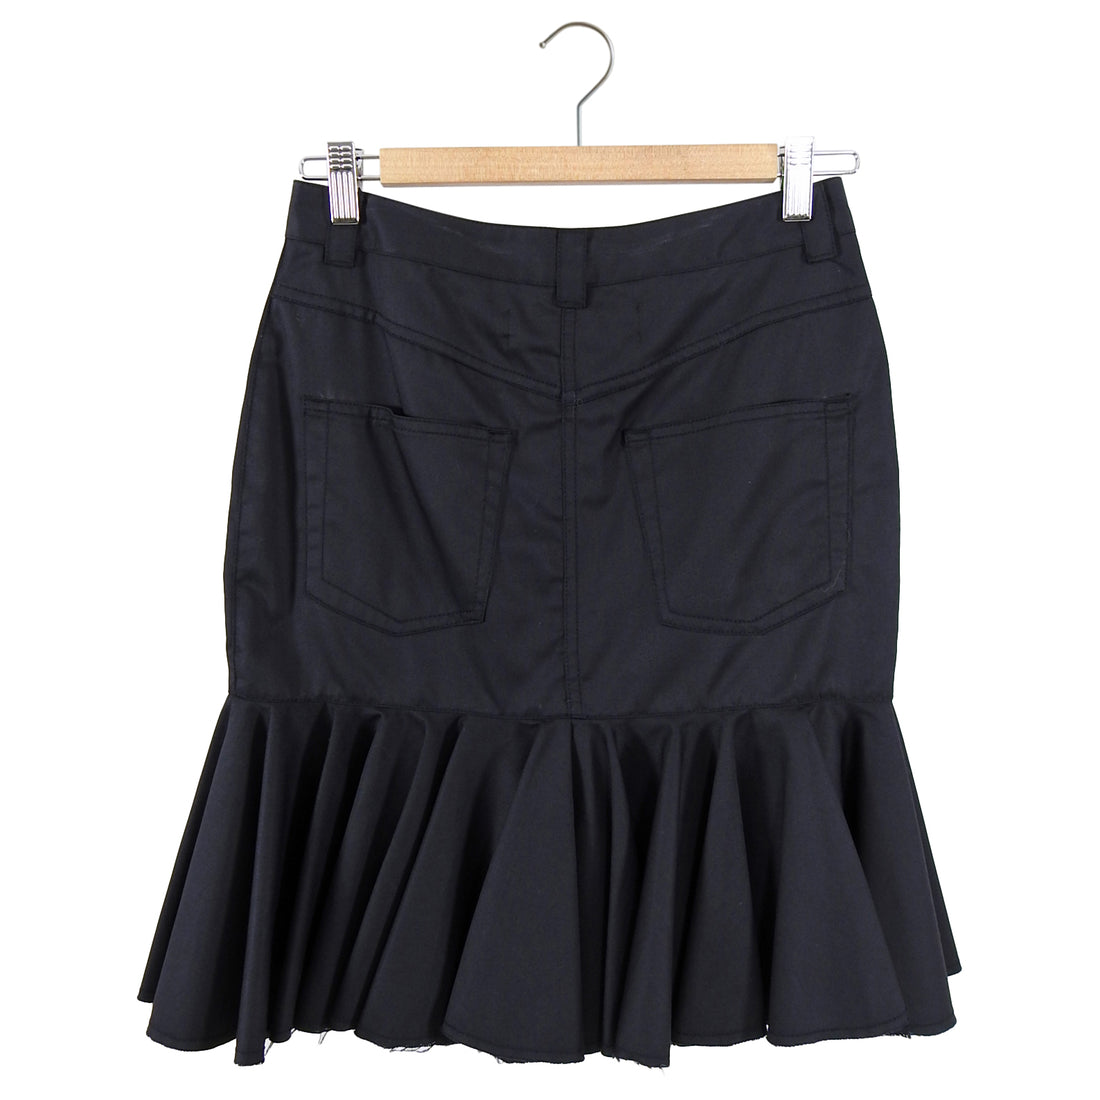 Marques Almeida Black Cotton Ruffle Skirt with Metal O Ring - XS